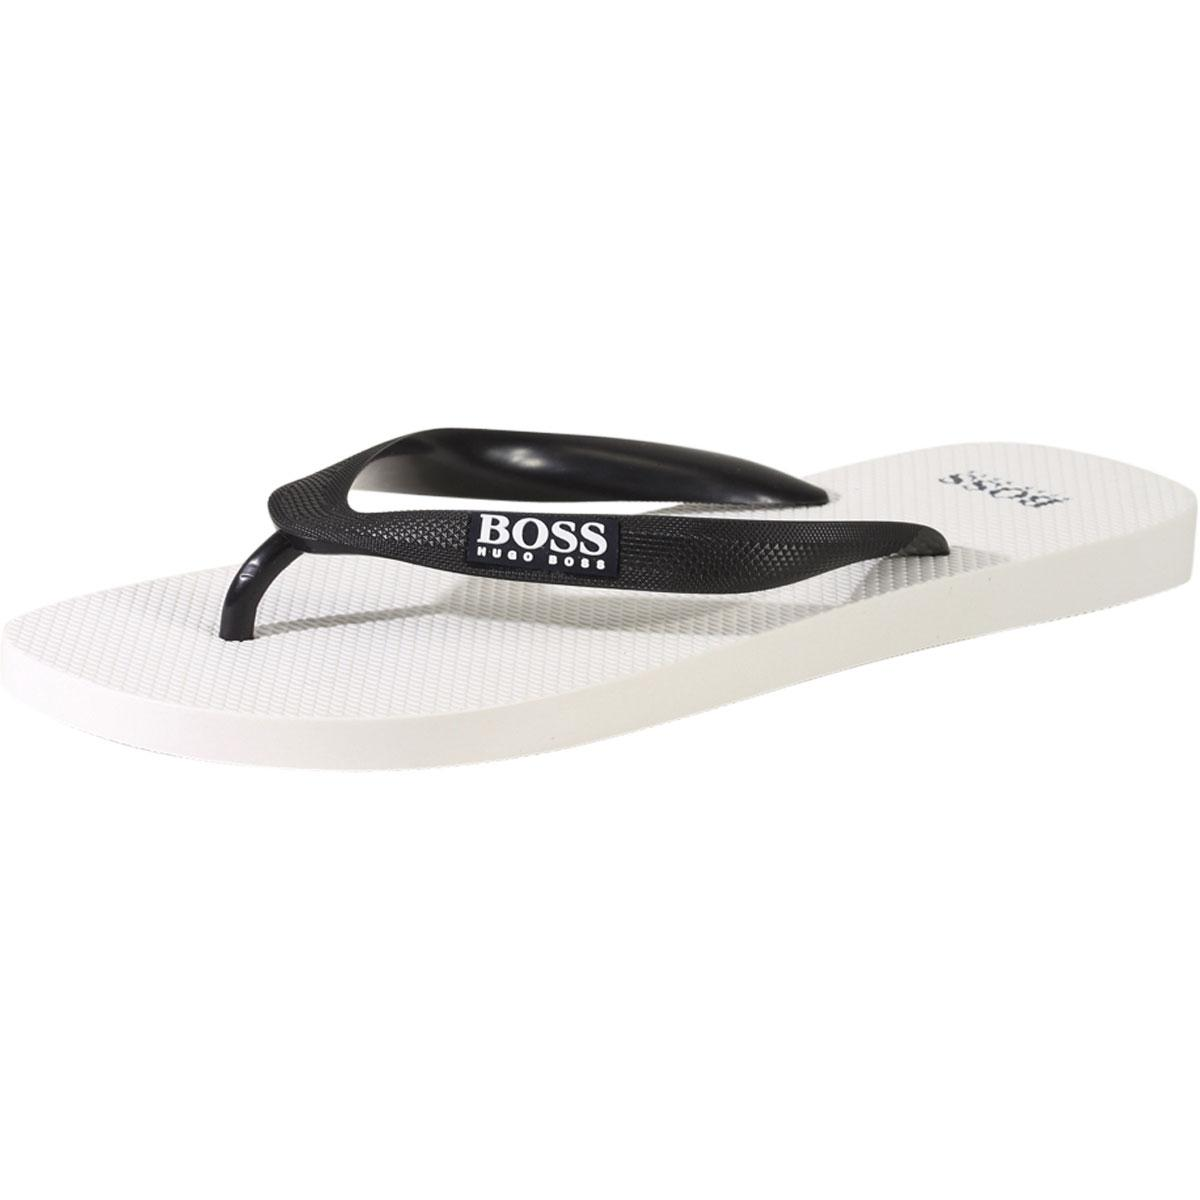 Hugo Boss Men's Wave Flip Flops Sandals Shoes